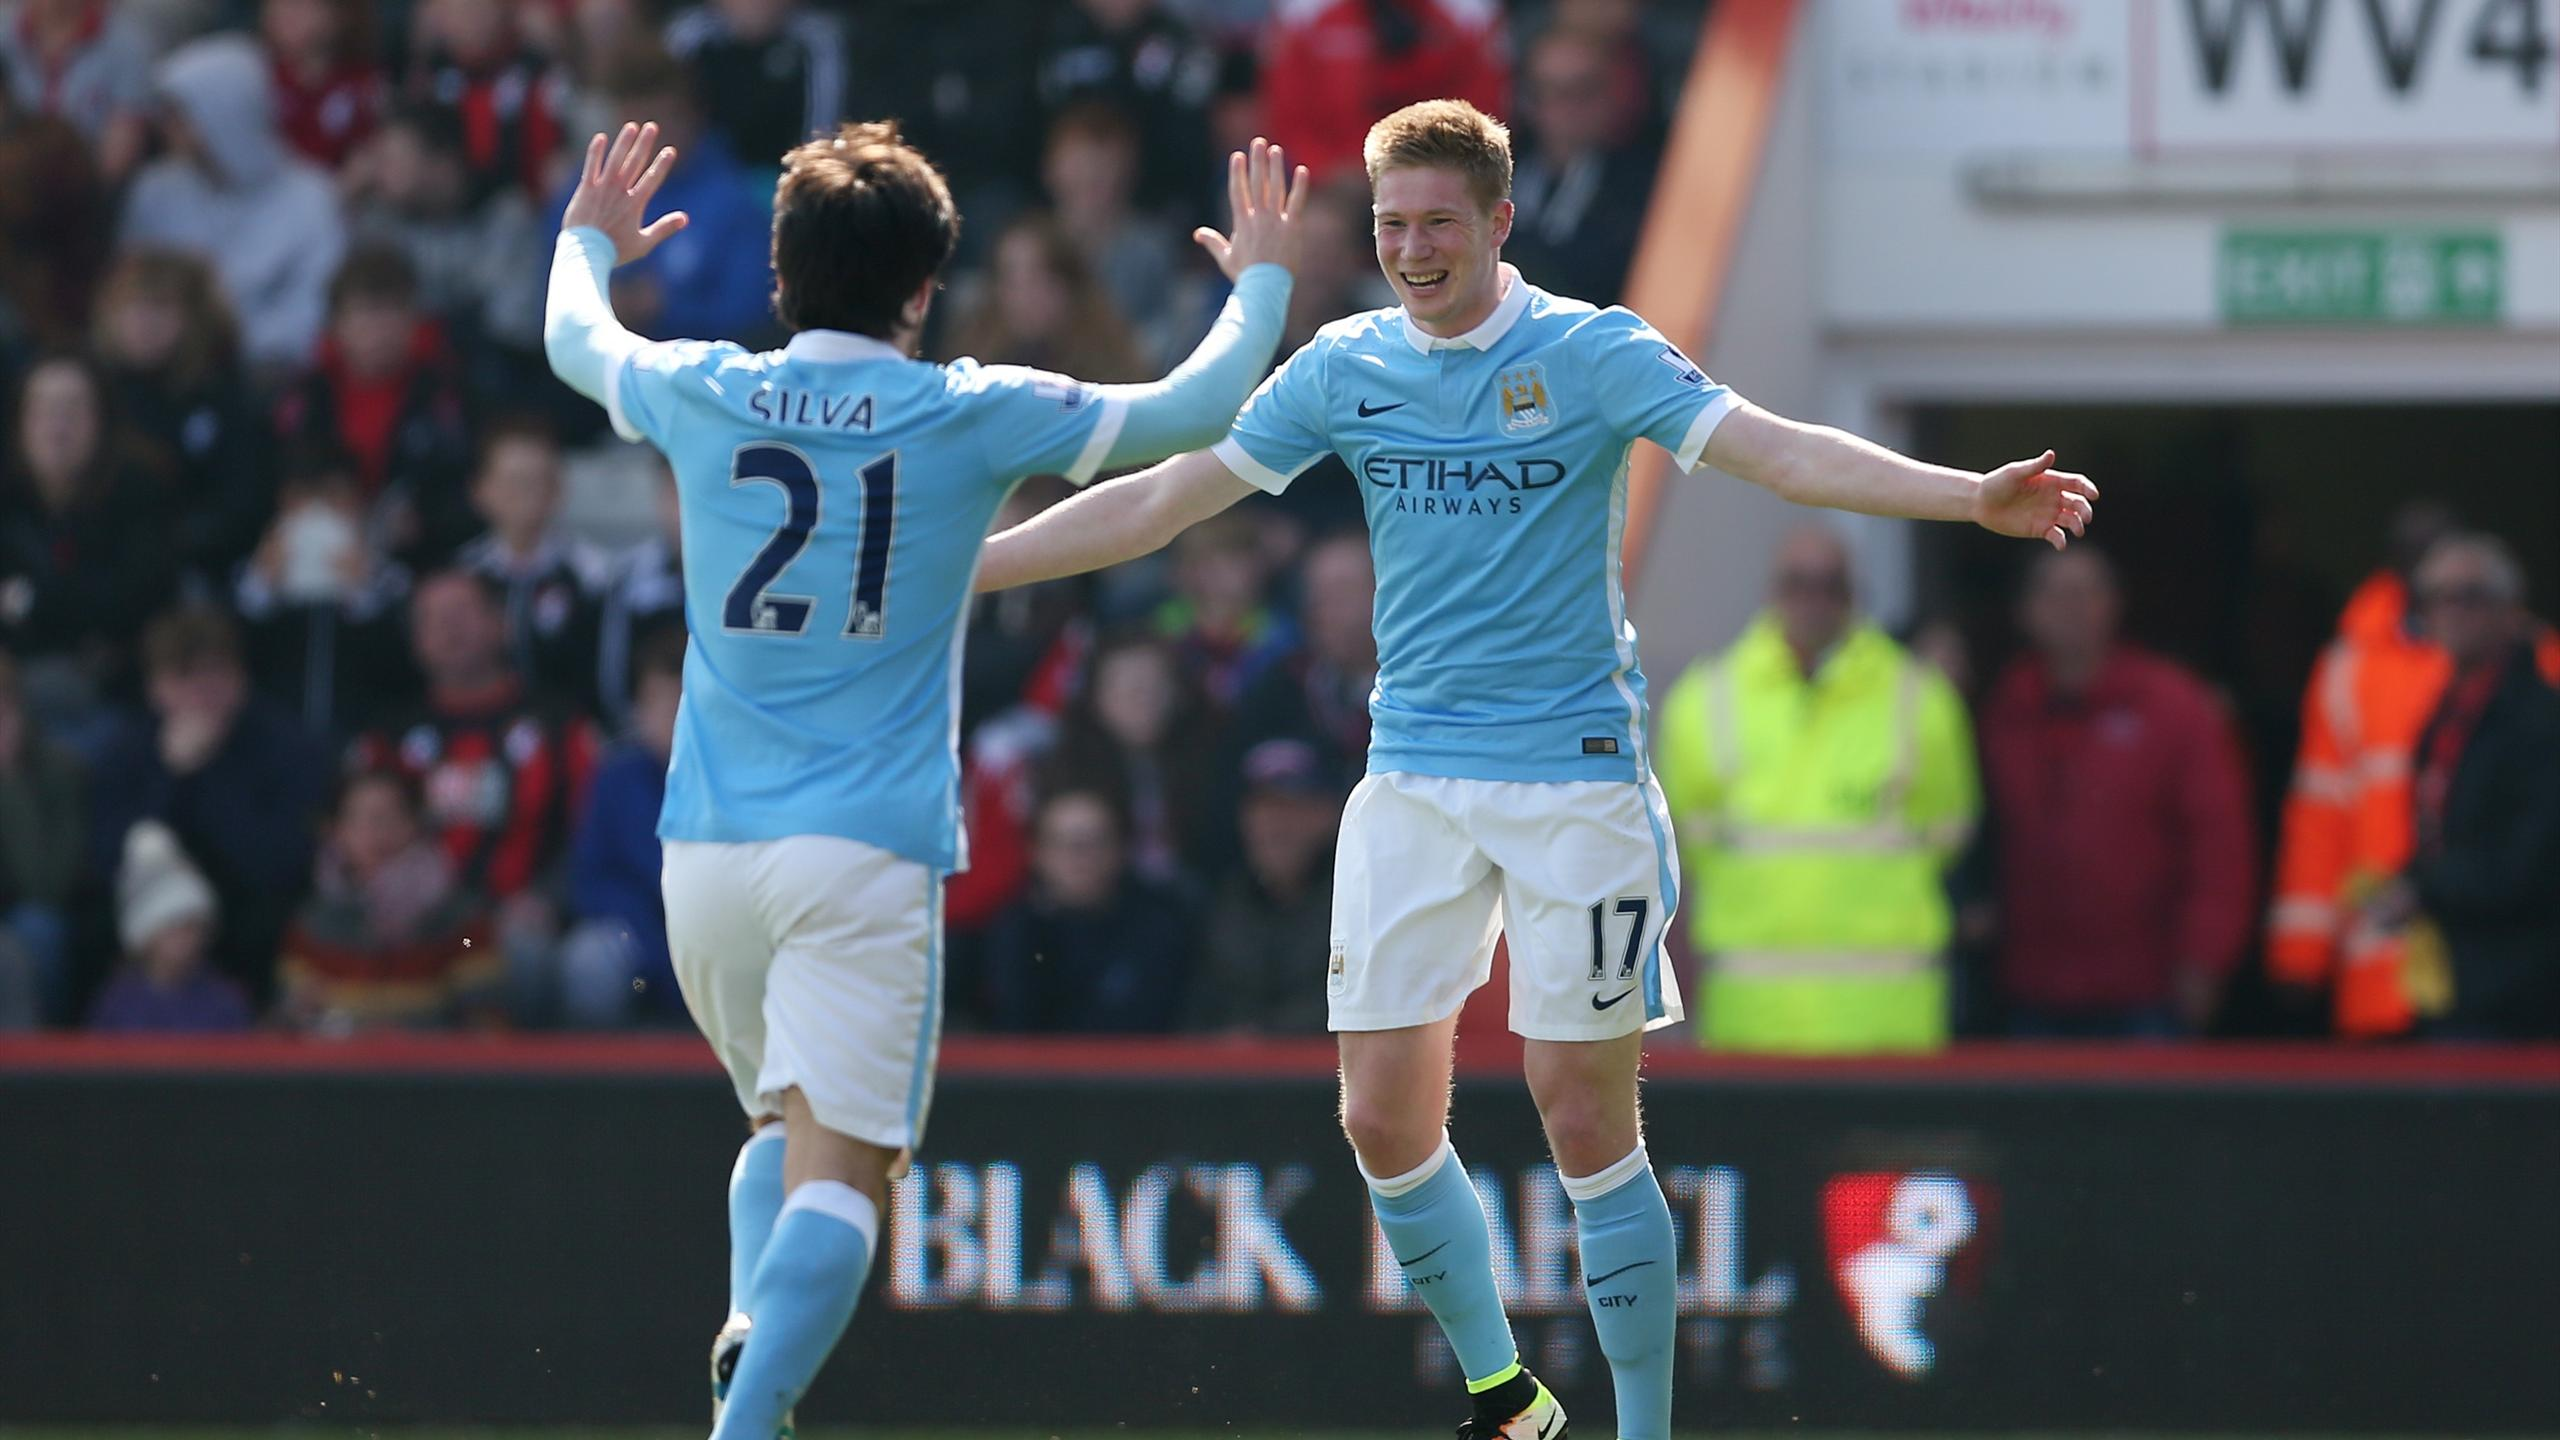 Kevin De Bruyne celebrates after scoring the second goal for Manchester City